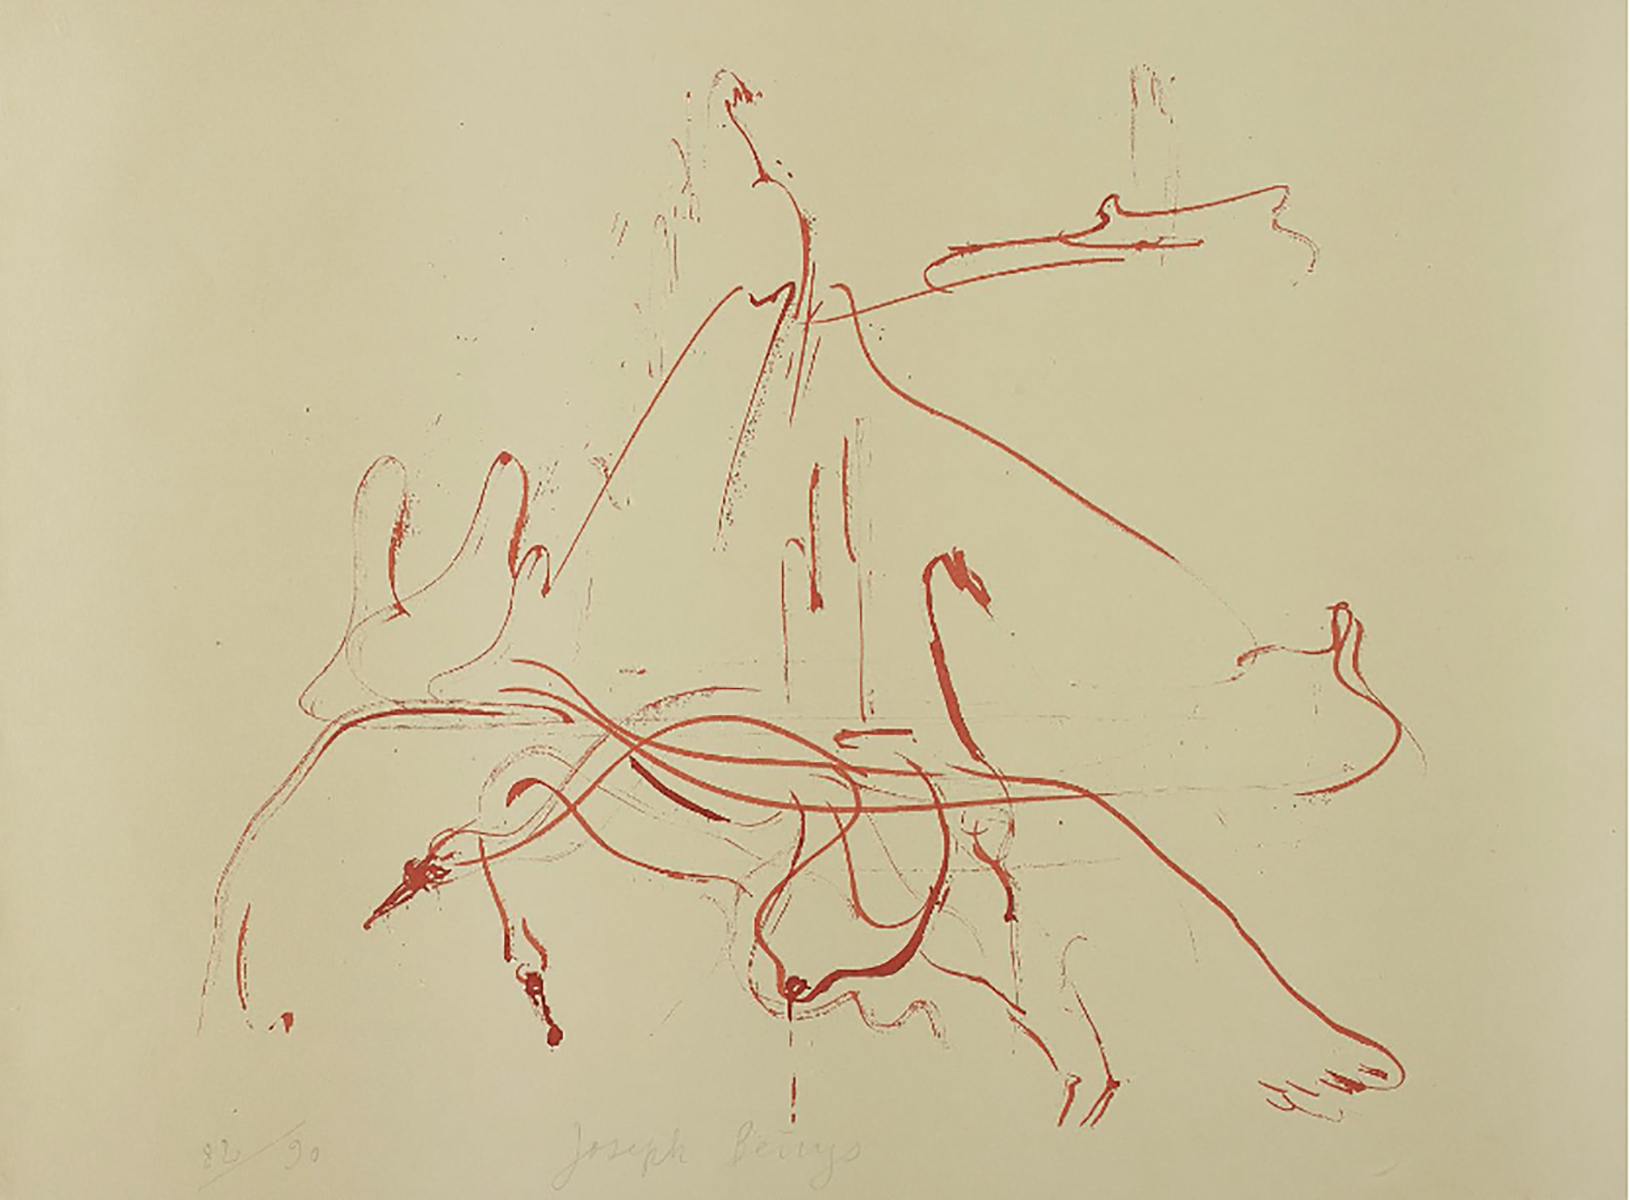 Joseph BEUYS (1921-1986)Lithograph in colors, on Rag paper, the full sheet56 x 75.9 cm Signed and numbered 82/90 in pencil(30 impressions in Roman numerals reserved for museums, +15 APs)Published by Propyläen Verlag, Berlin and Pantheon Presse, Rome